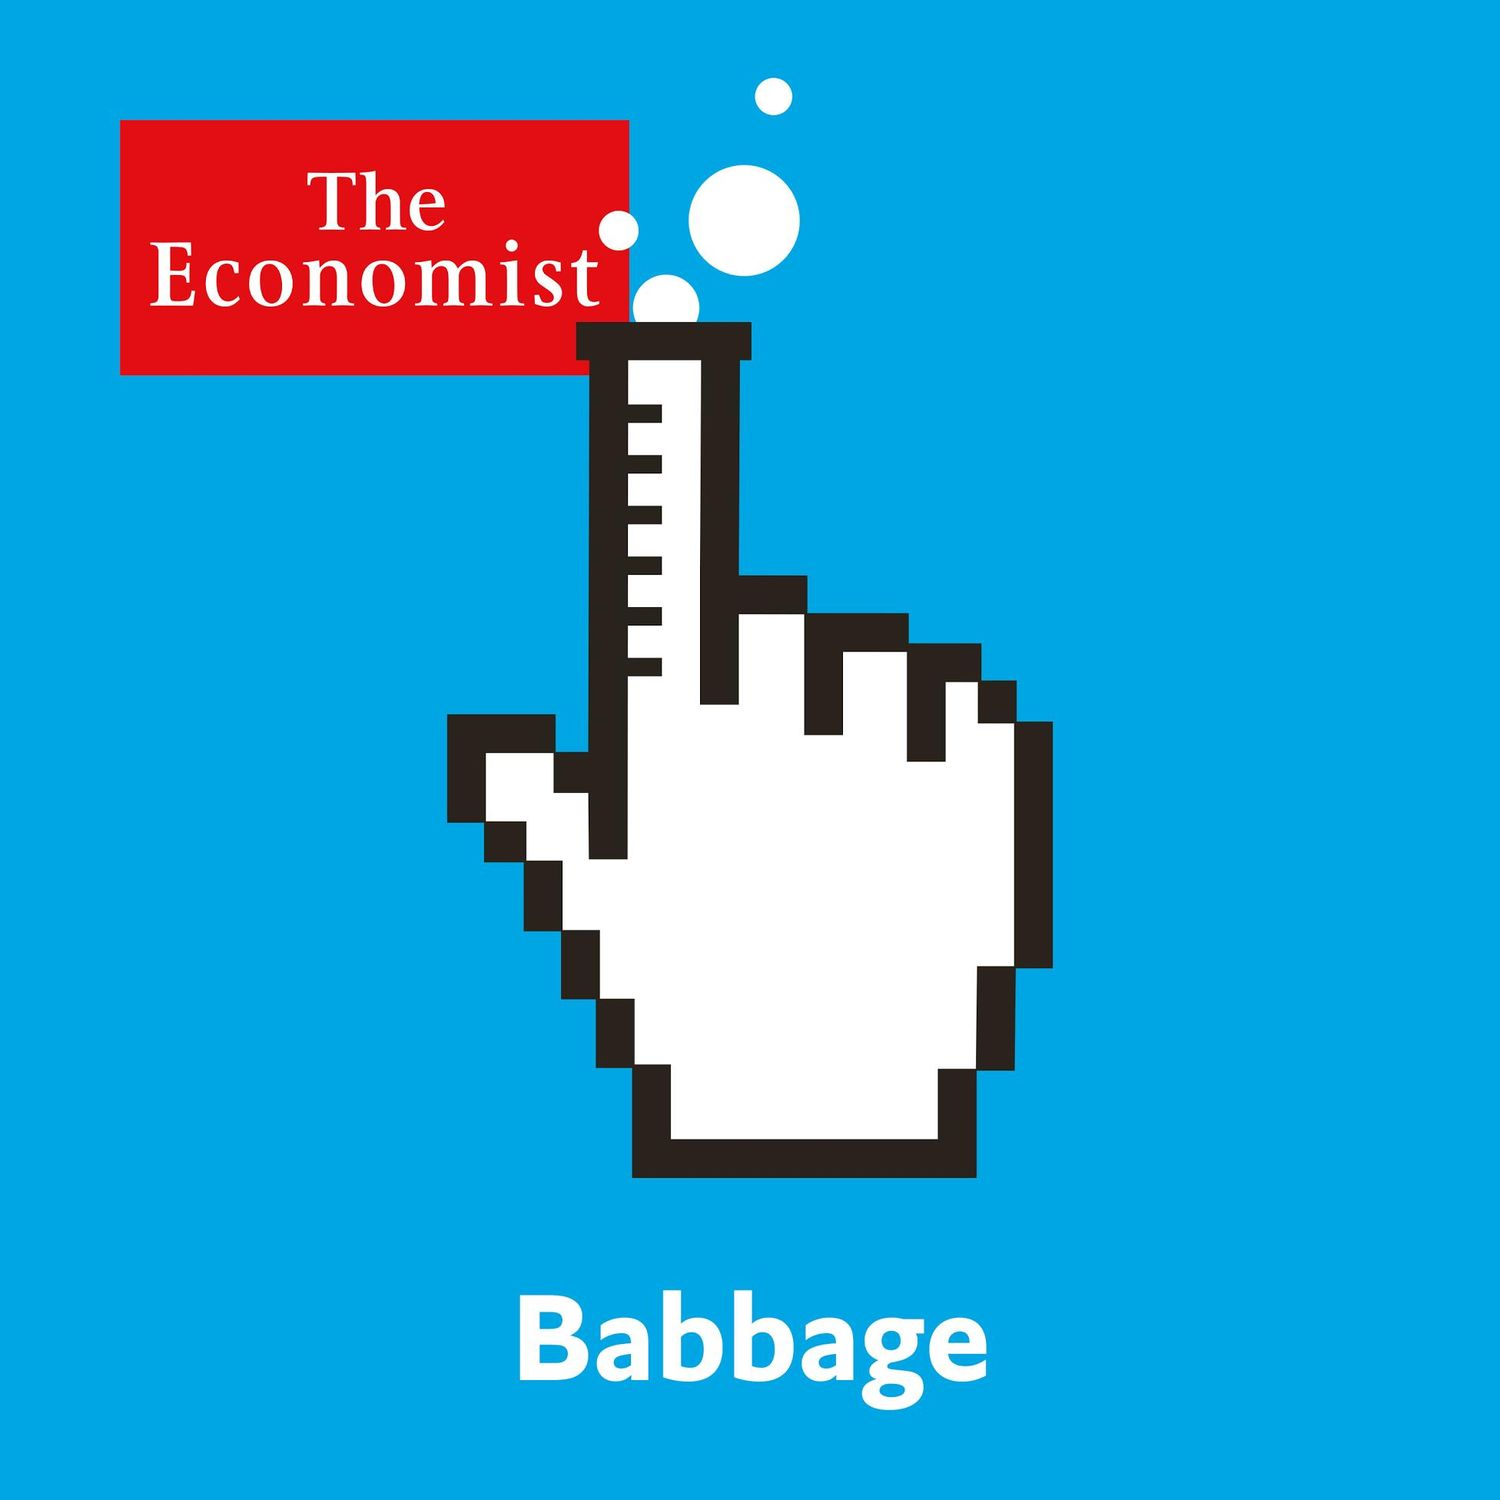 Babbage: Paranoid android